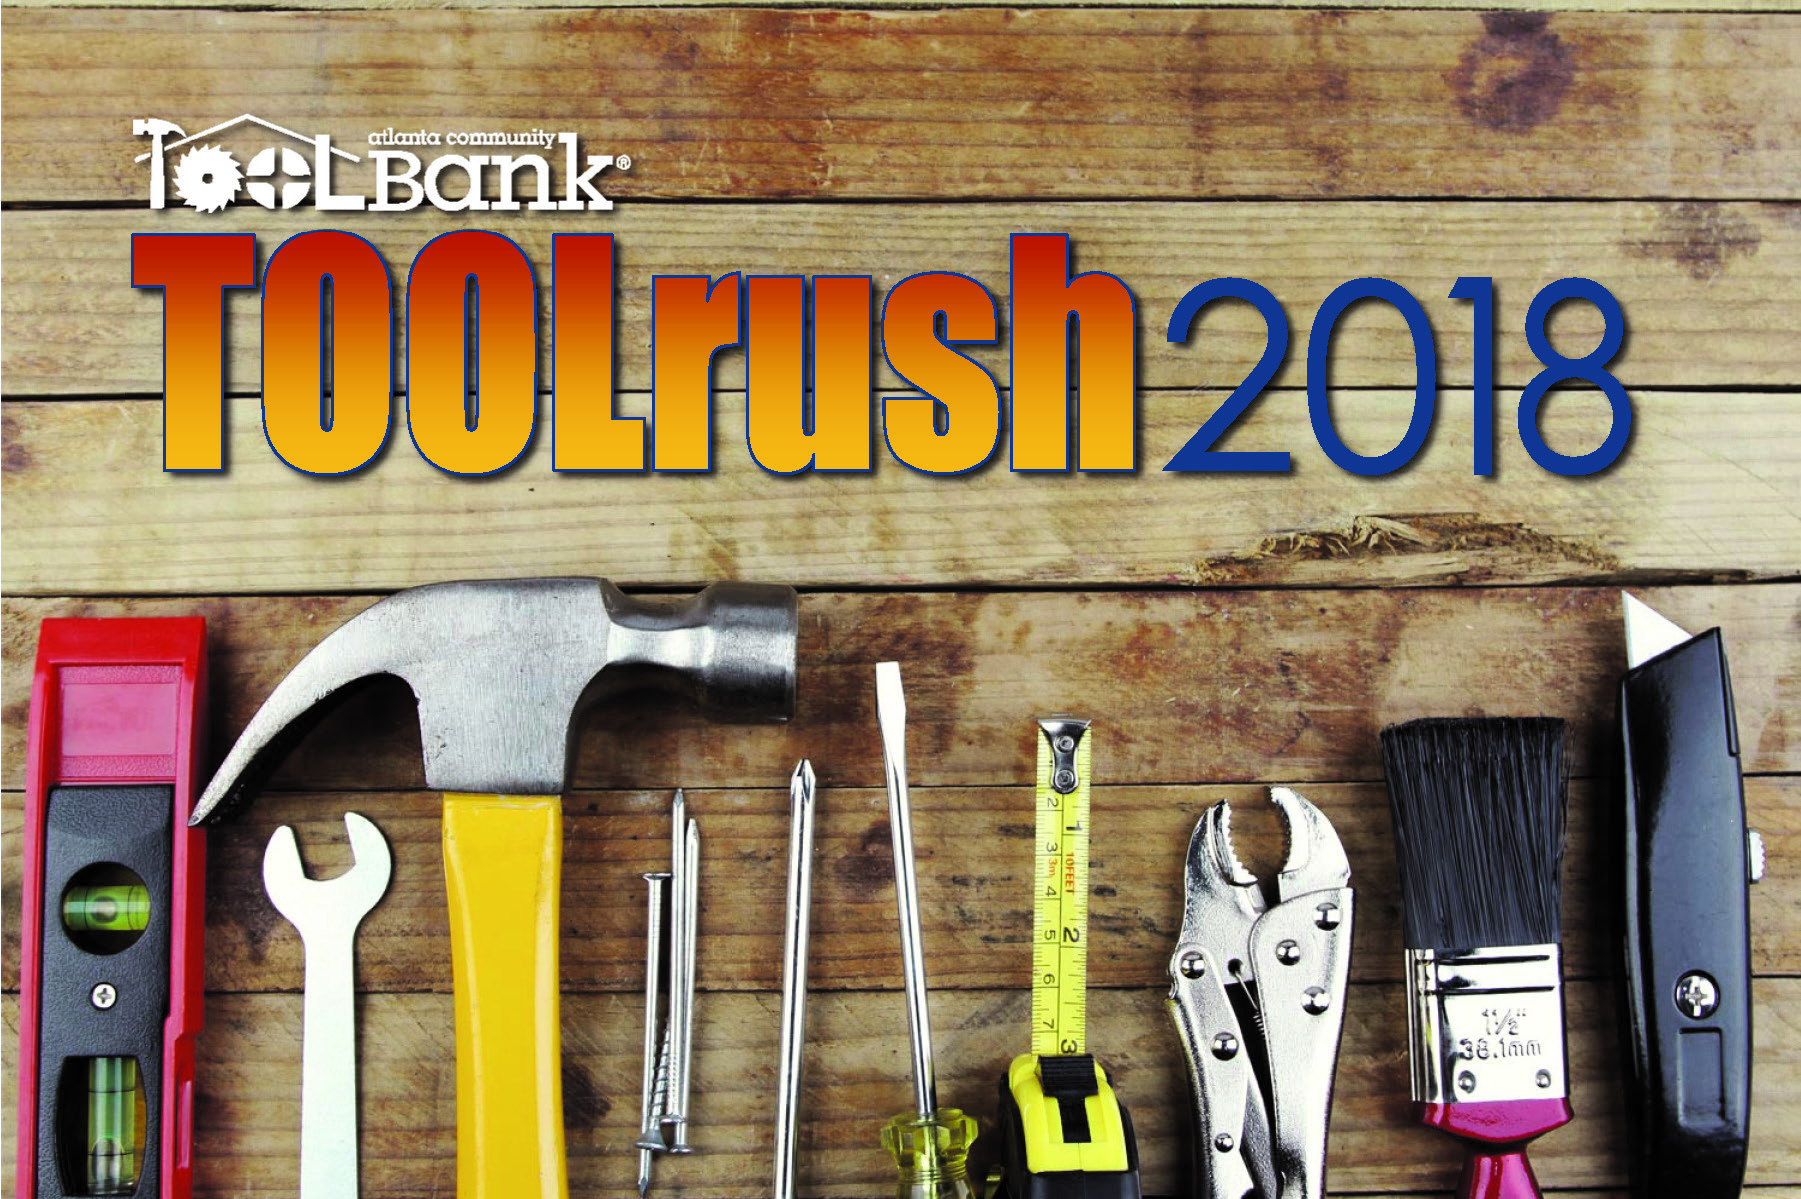 Toolbank Tool Rush, Volunteer Opportunity @ Houston Community Toolbank | Houston | Texas | United States